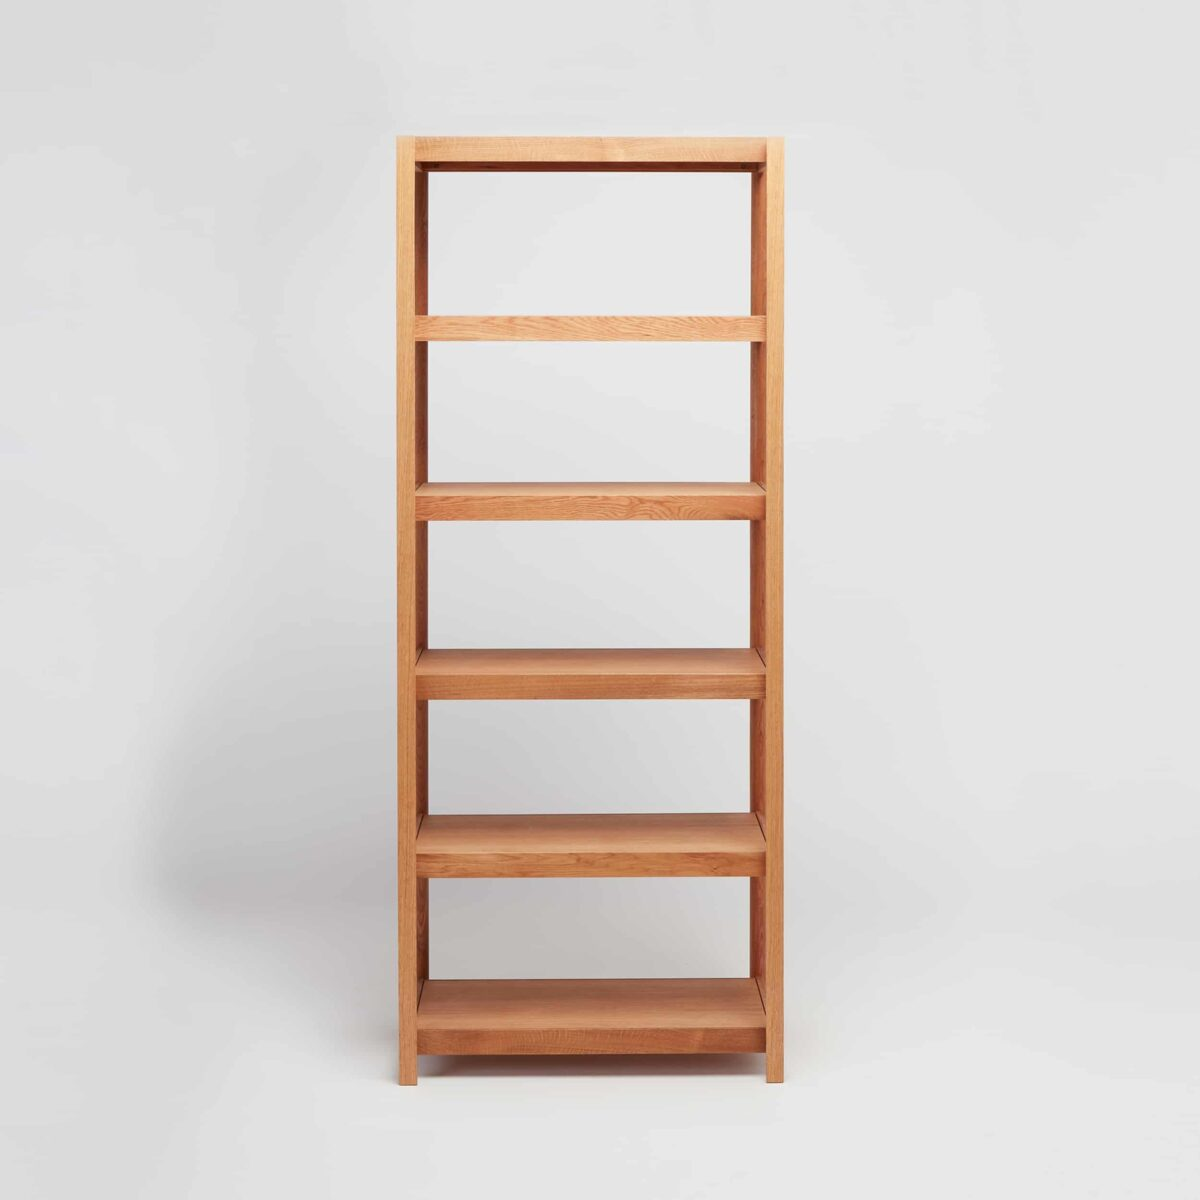 Fram Tall Oak Shelving